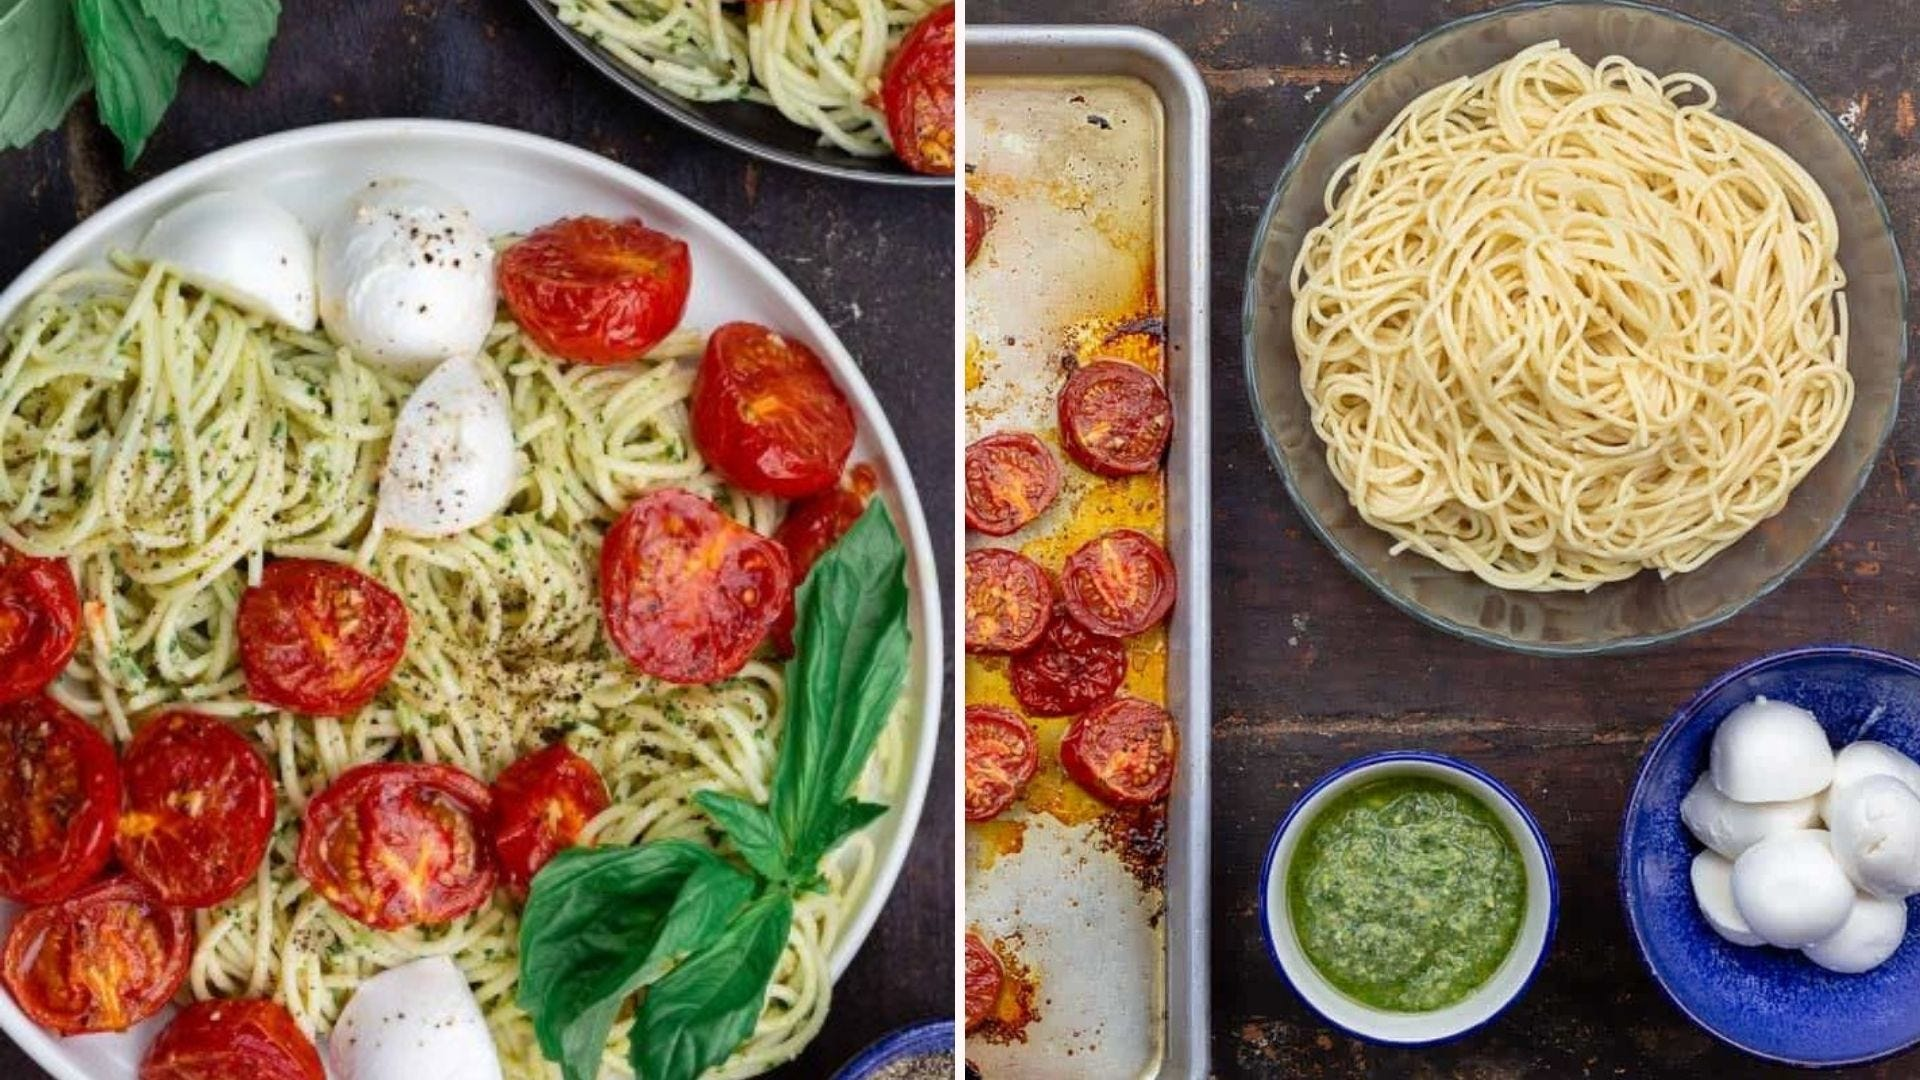 Pesto Pasta with Tomatoes and Mozzarella on a plate and the ingredients lying out on a table.